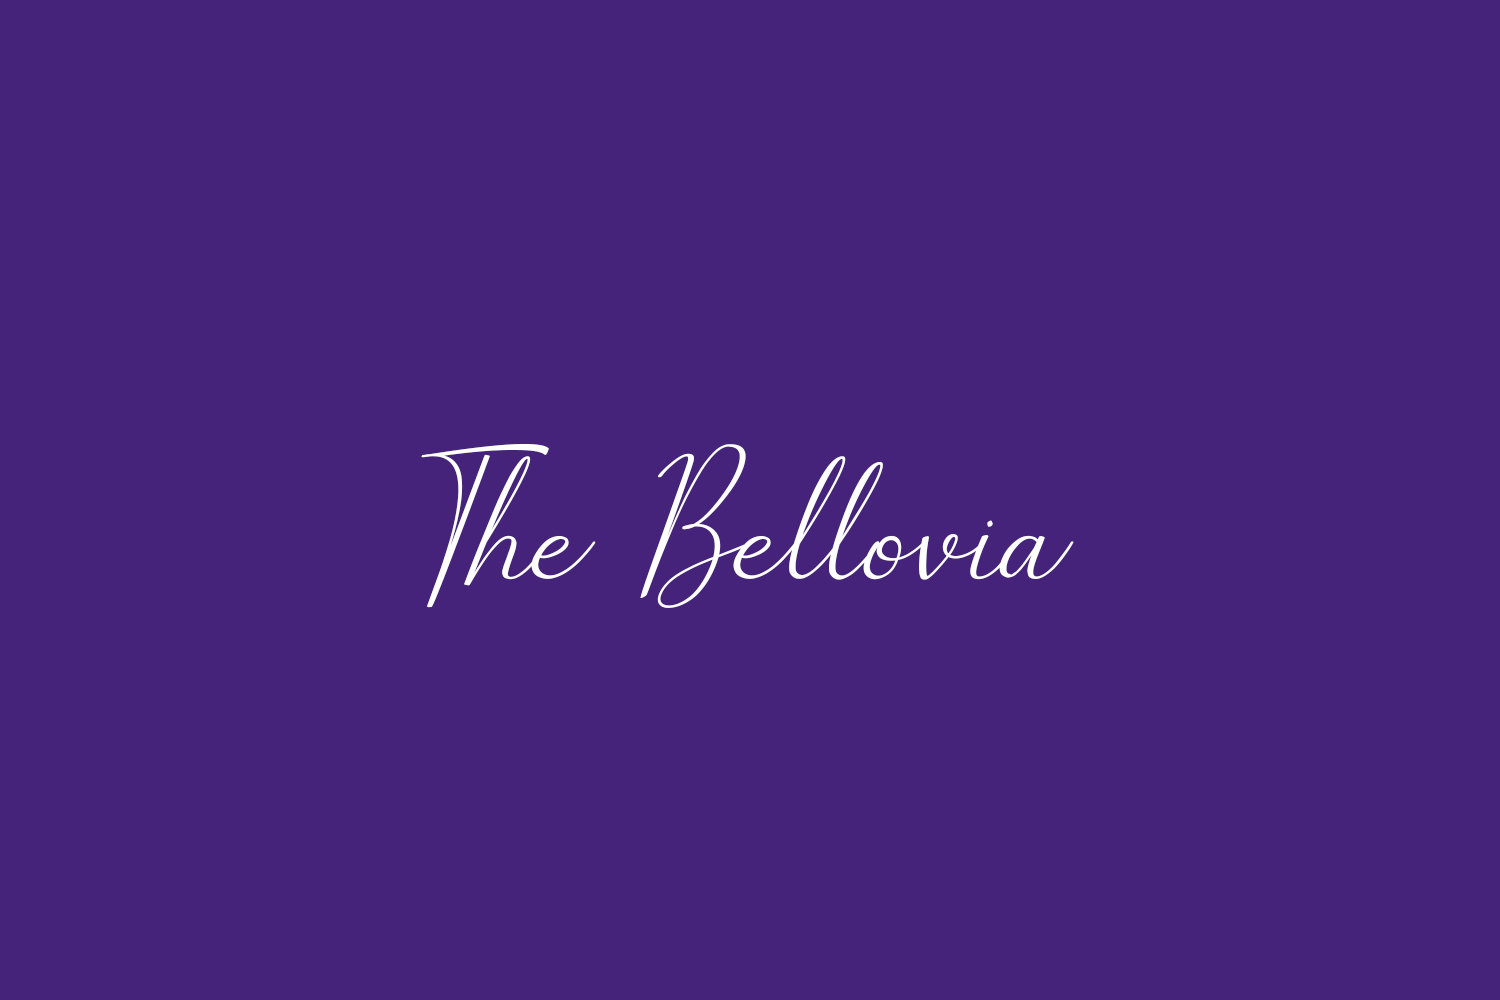 The Bellovia Free Font